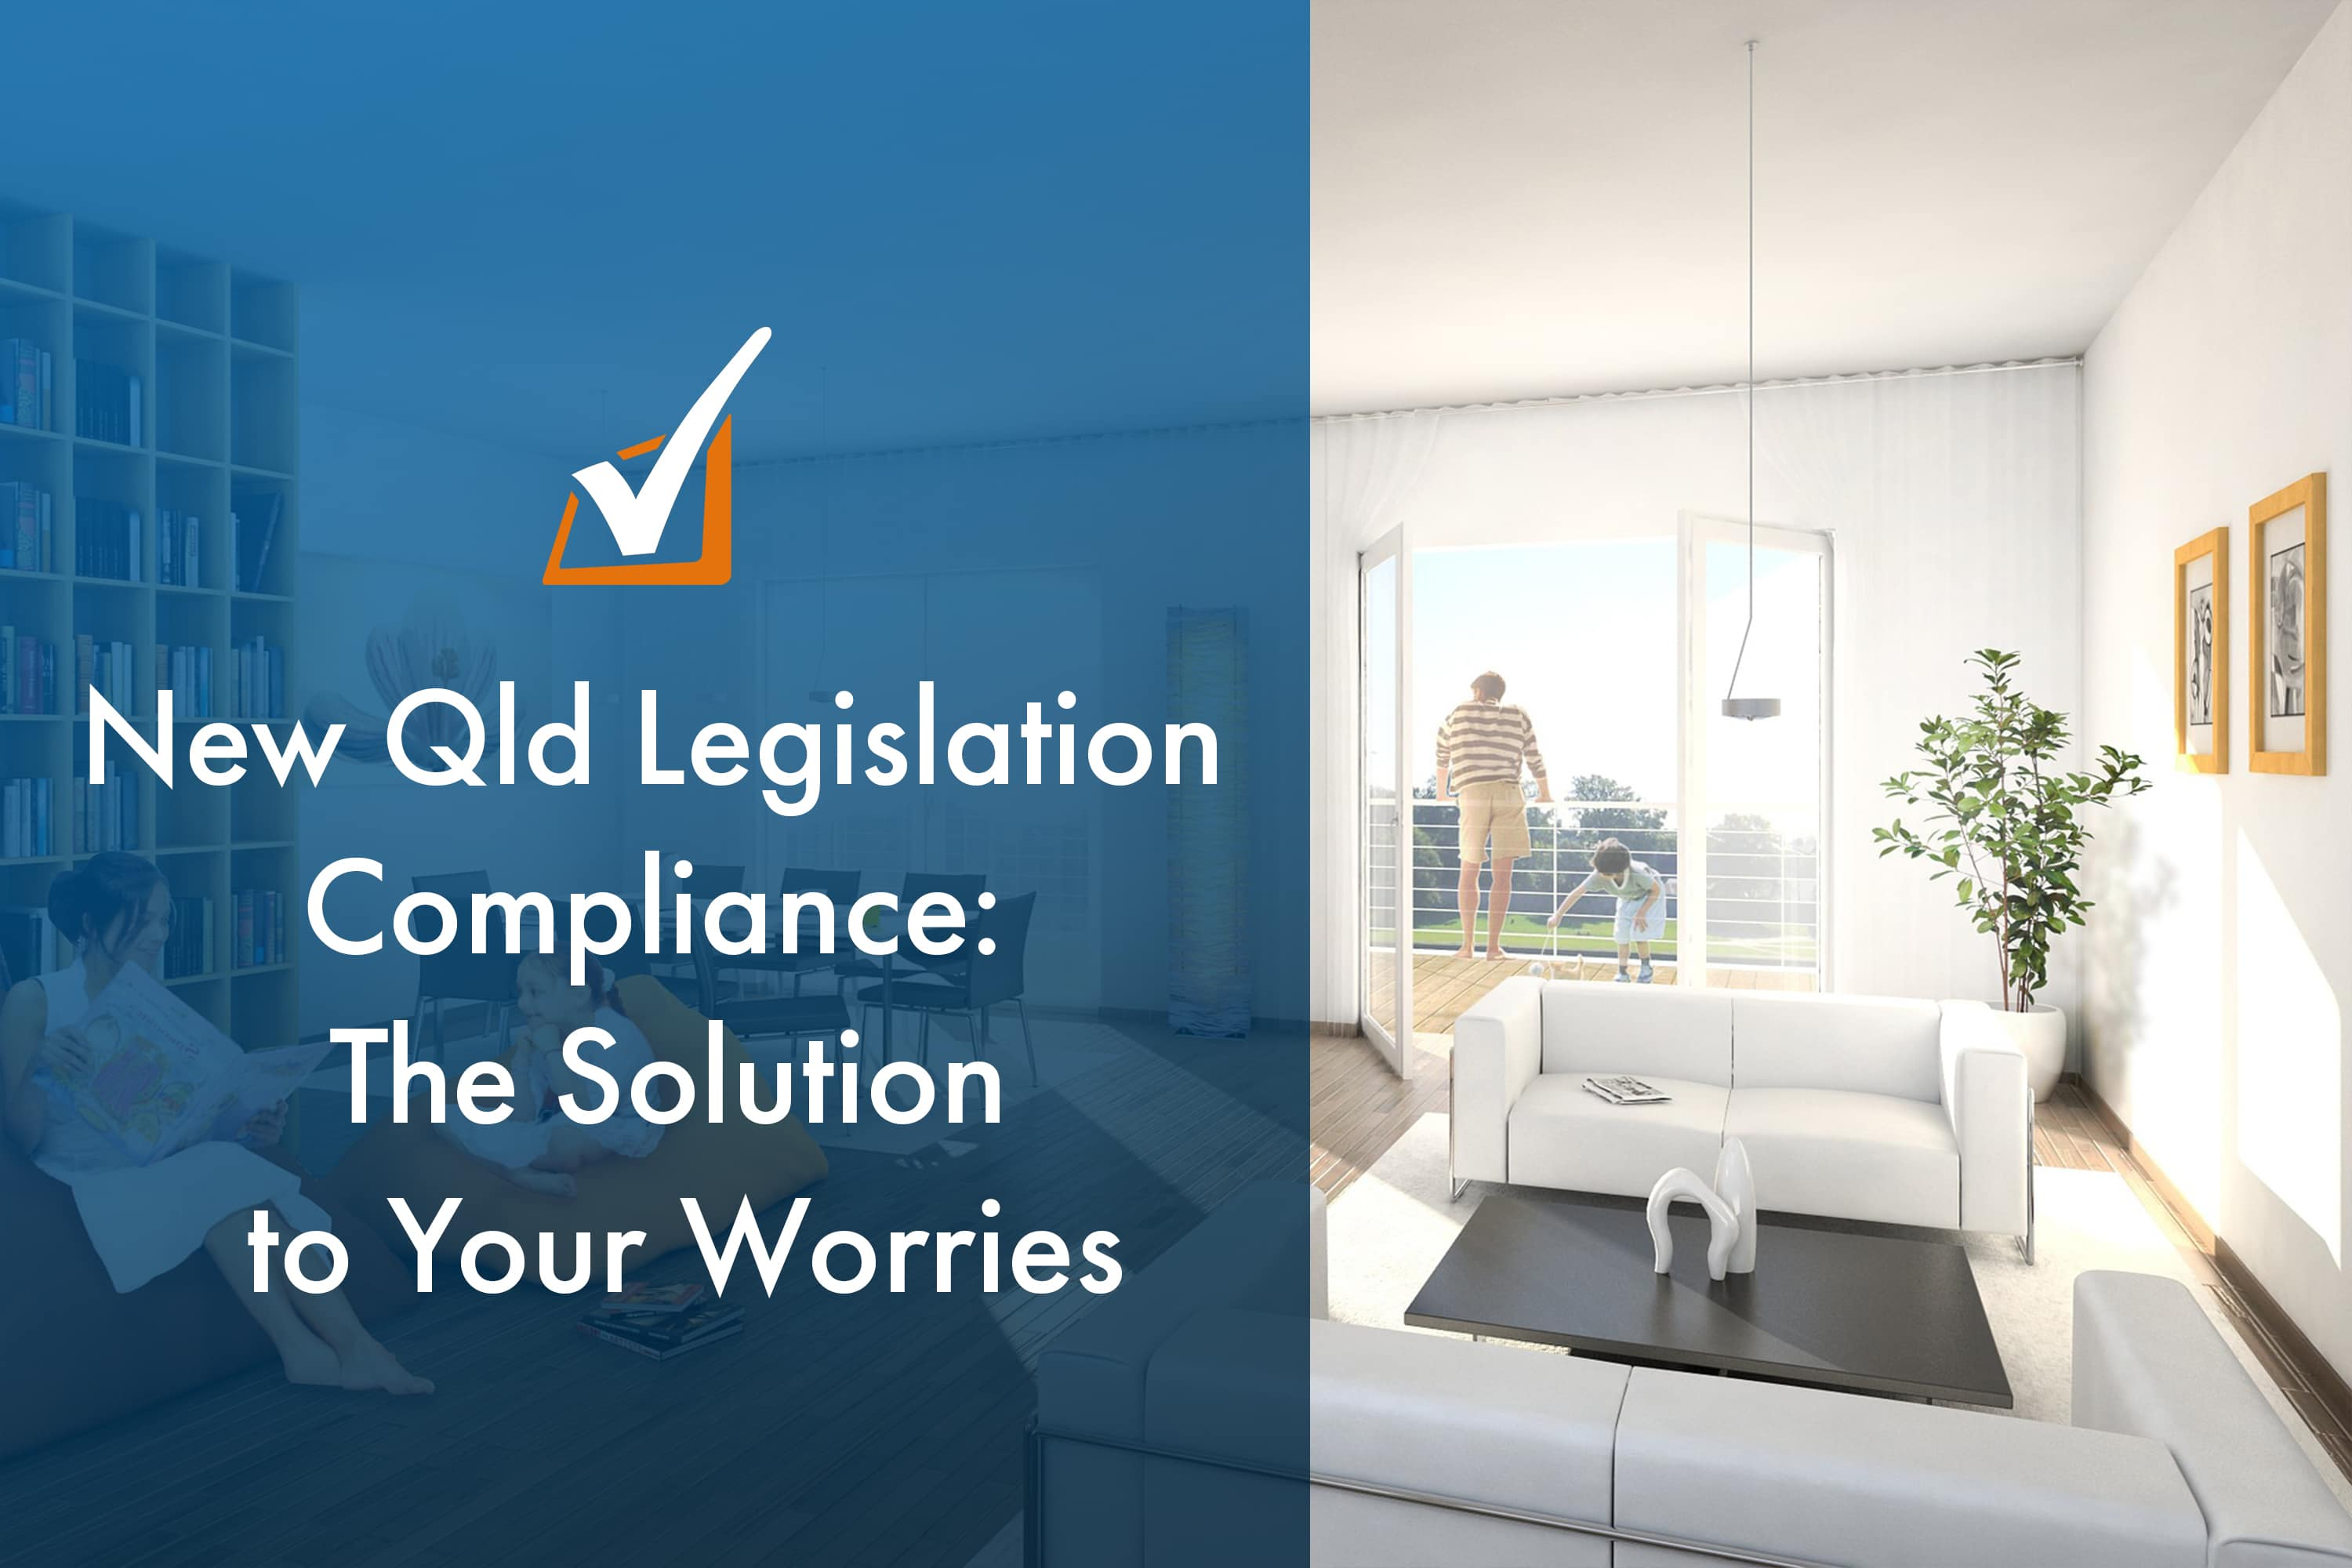 New Qld Legislation Compliance